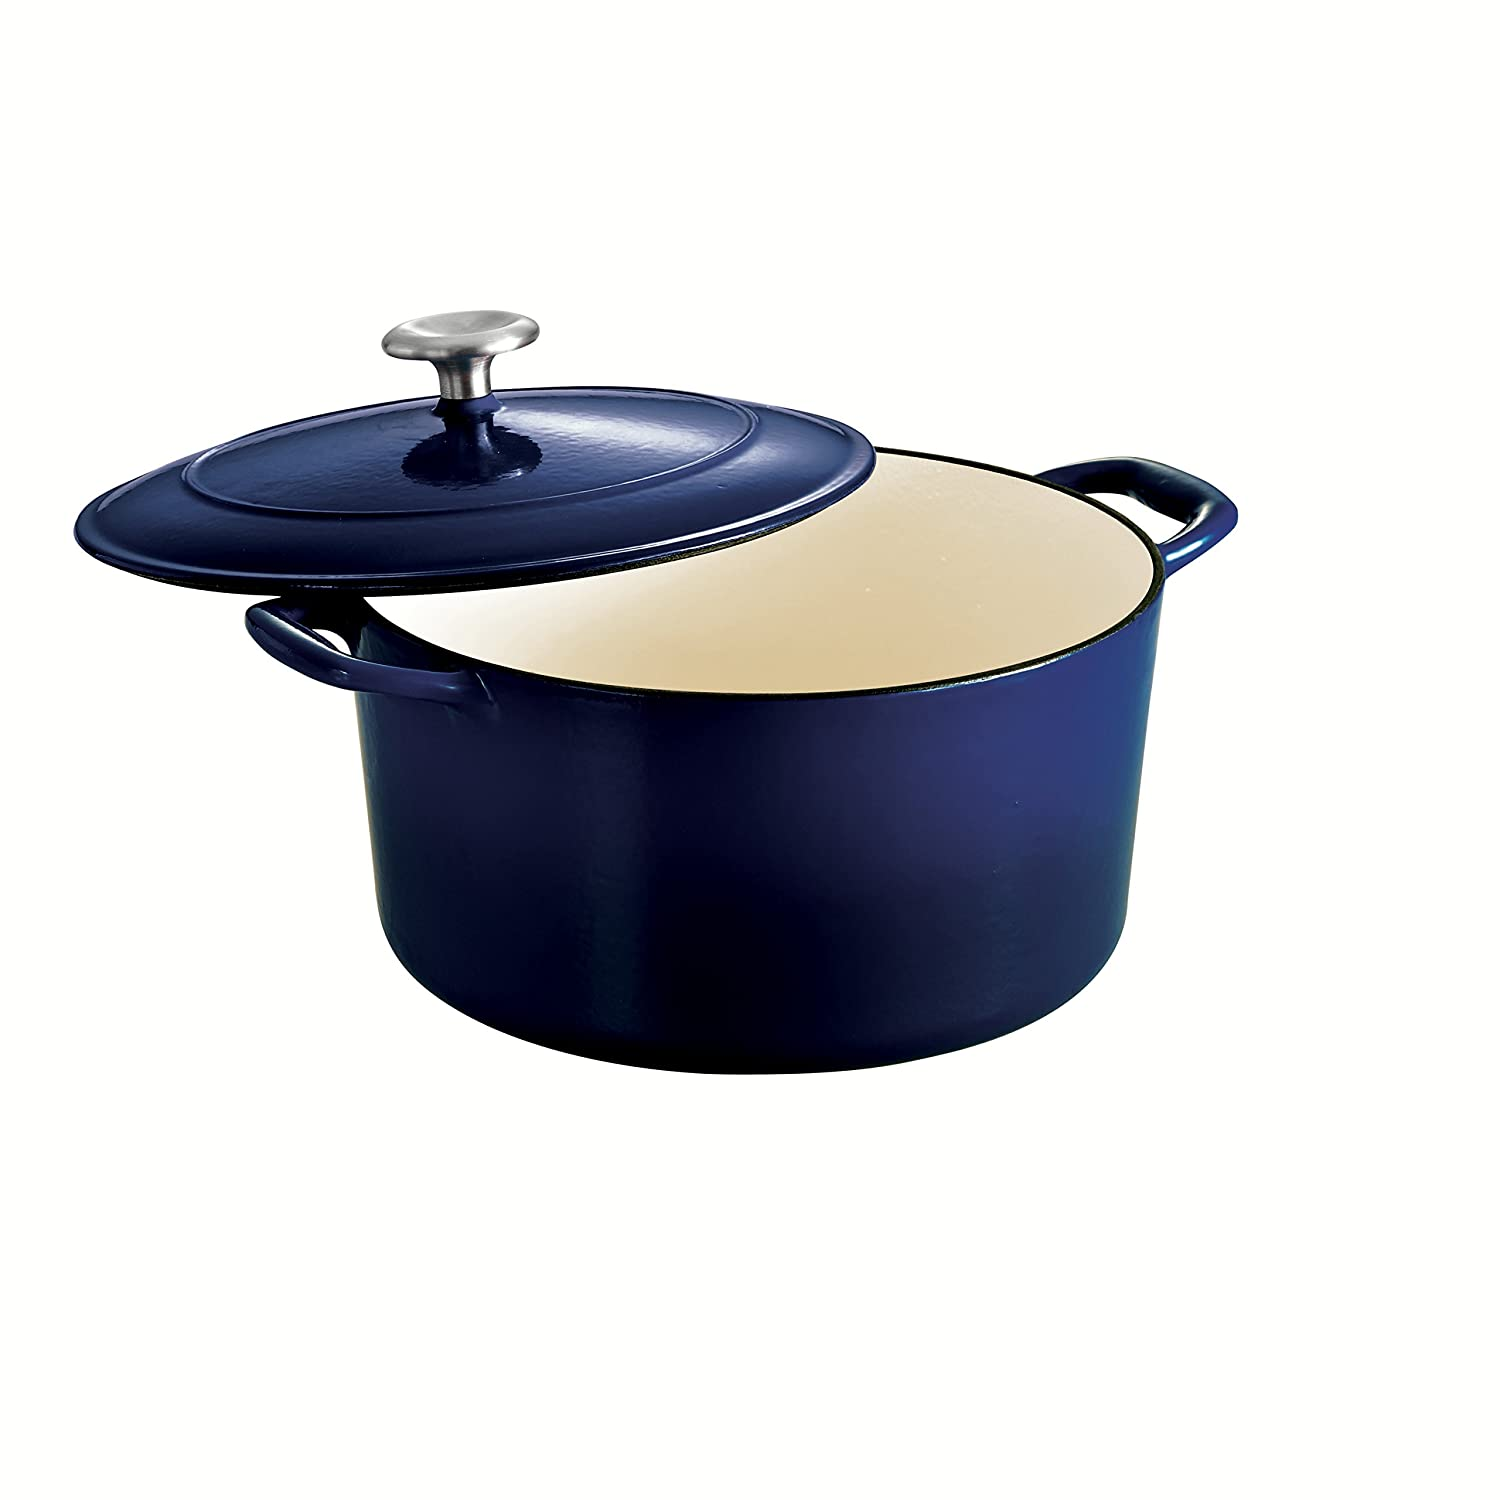 Tramontina 80131/076DS Enameled Cast Iron Covered Round Dutch Oven, 6.5-Quart, Gradated Cobalt